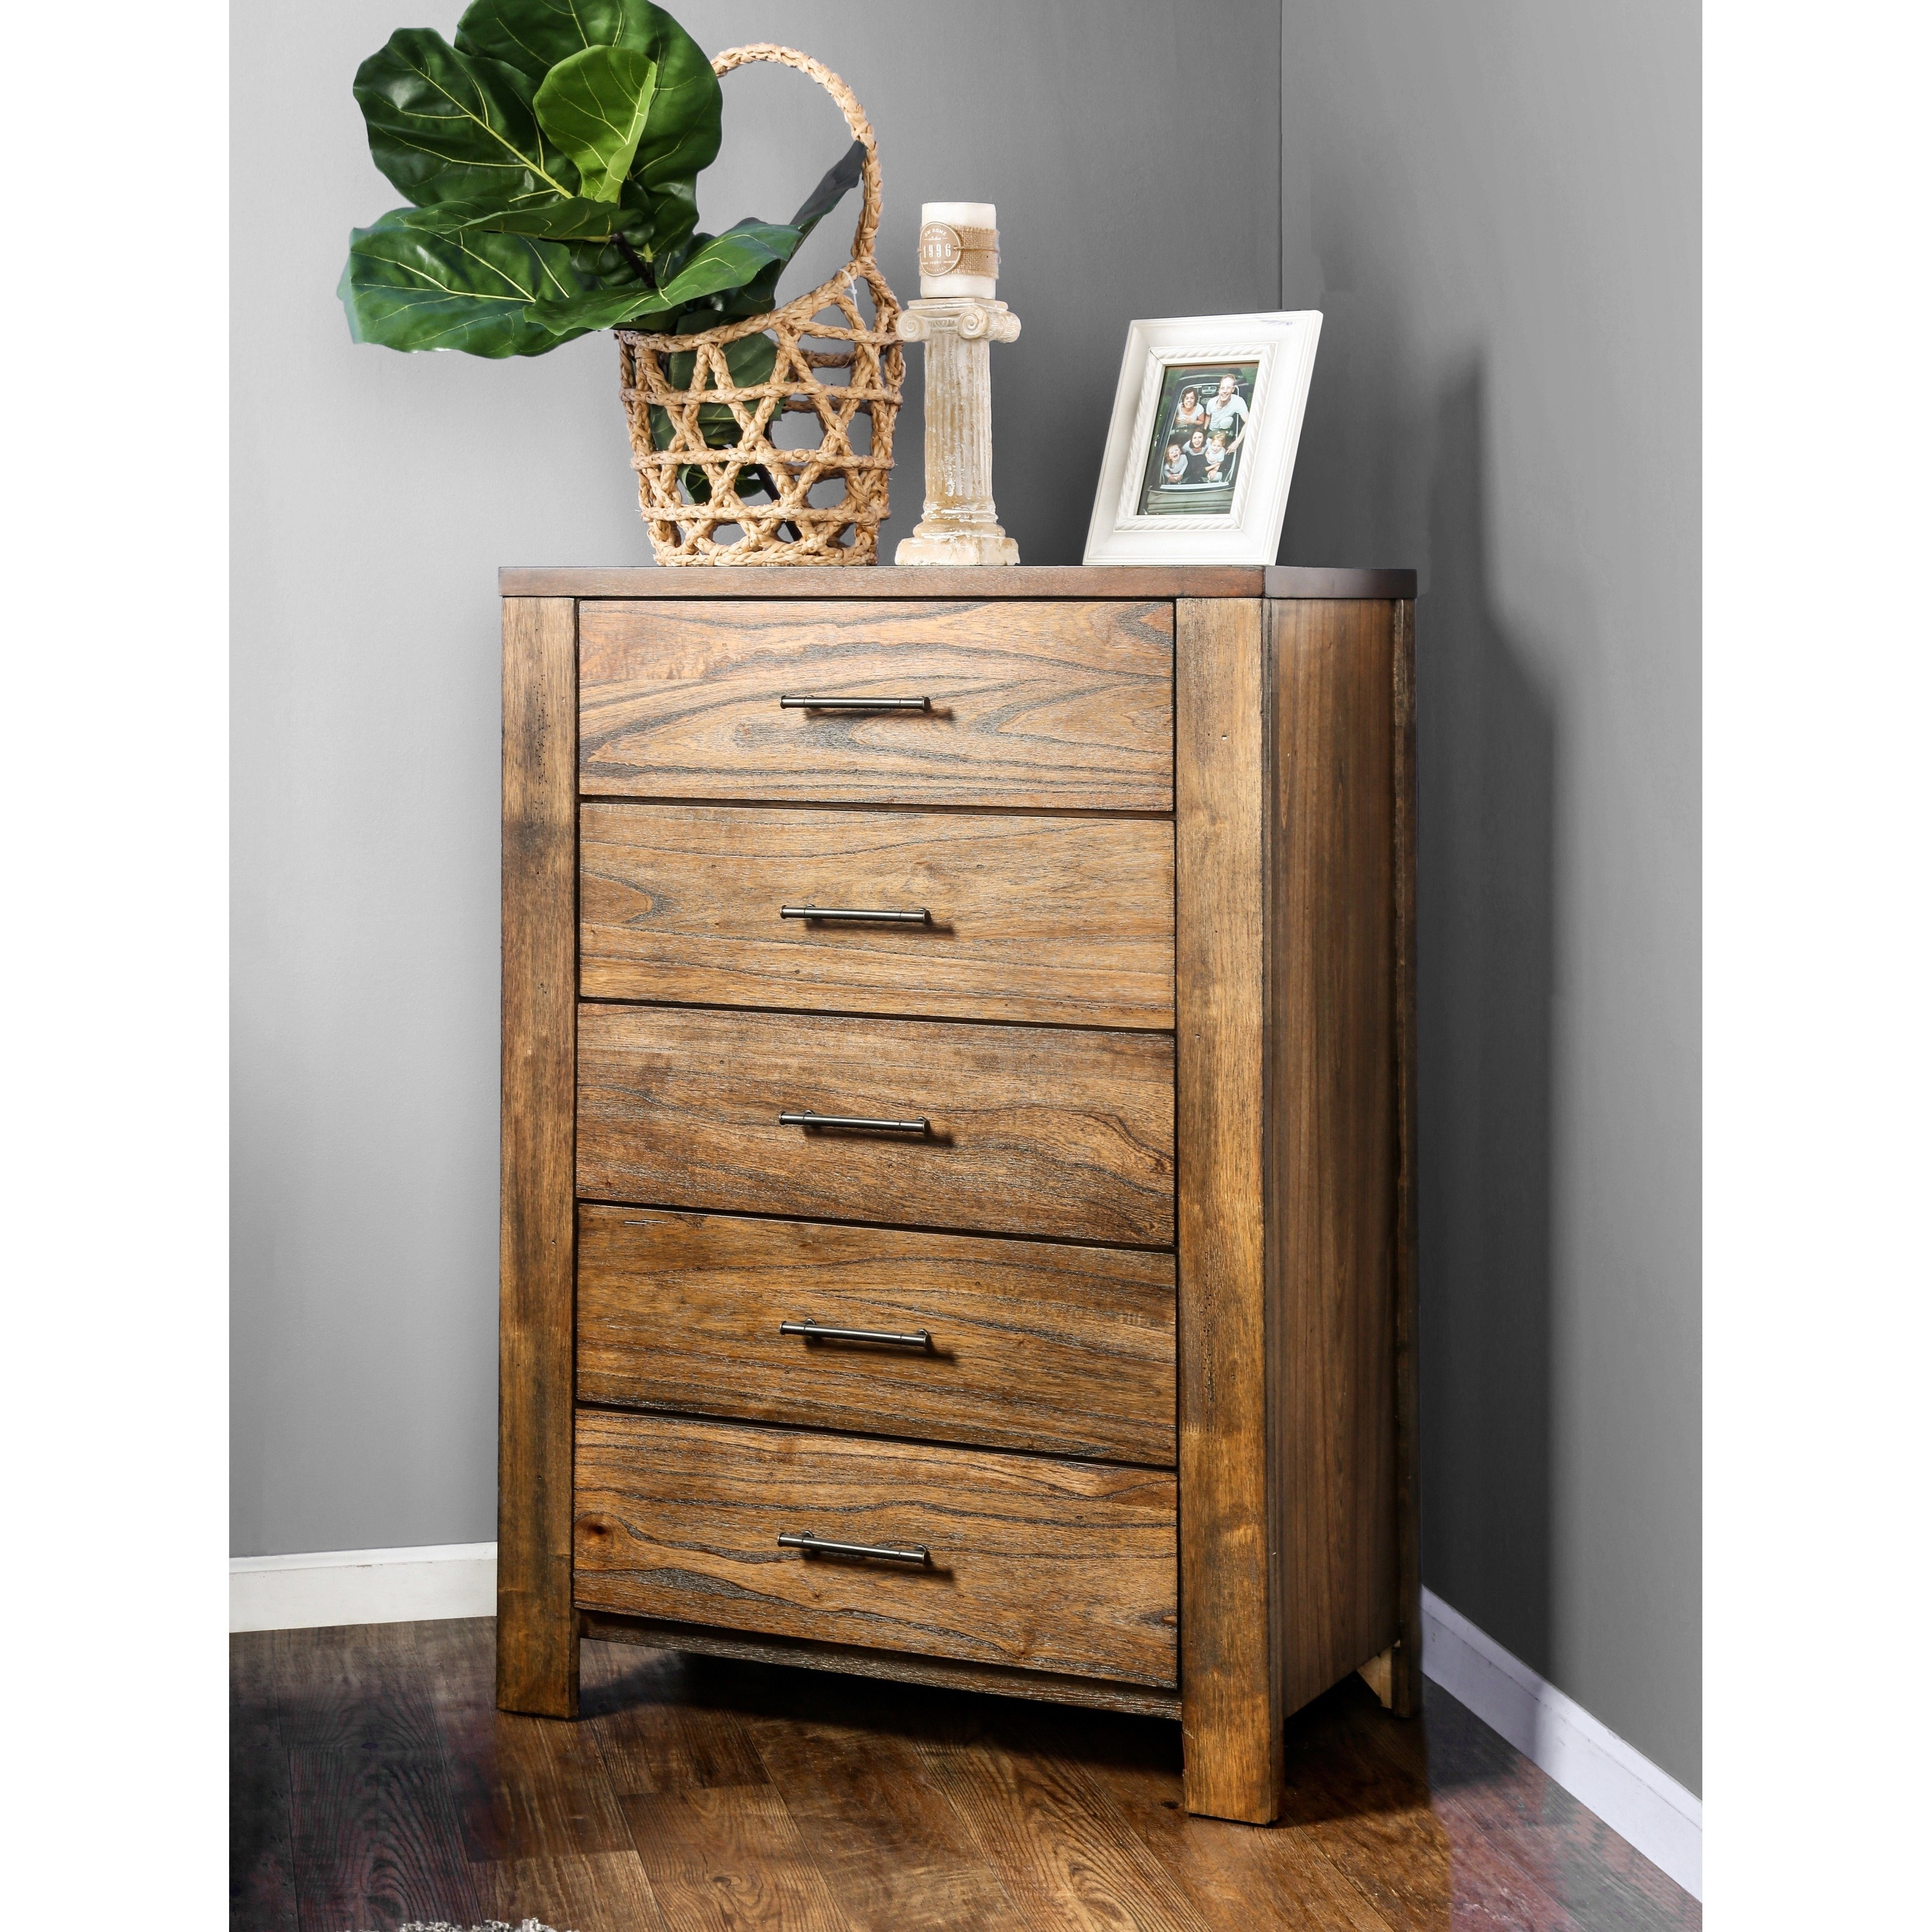 Shop Furniture Of America Casso Rustic Oak 5-Drawer Chest - Free pertaining to Light Brown Reclaimed Elm & Pine 84 Inch Sideboards (Image 22 of 30)